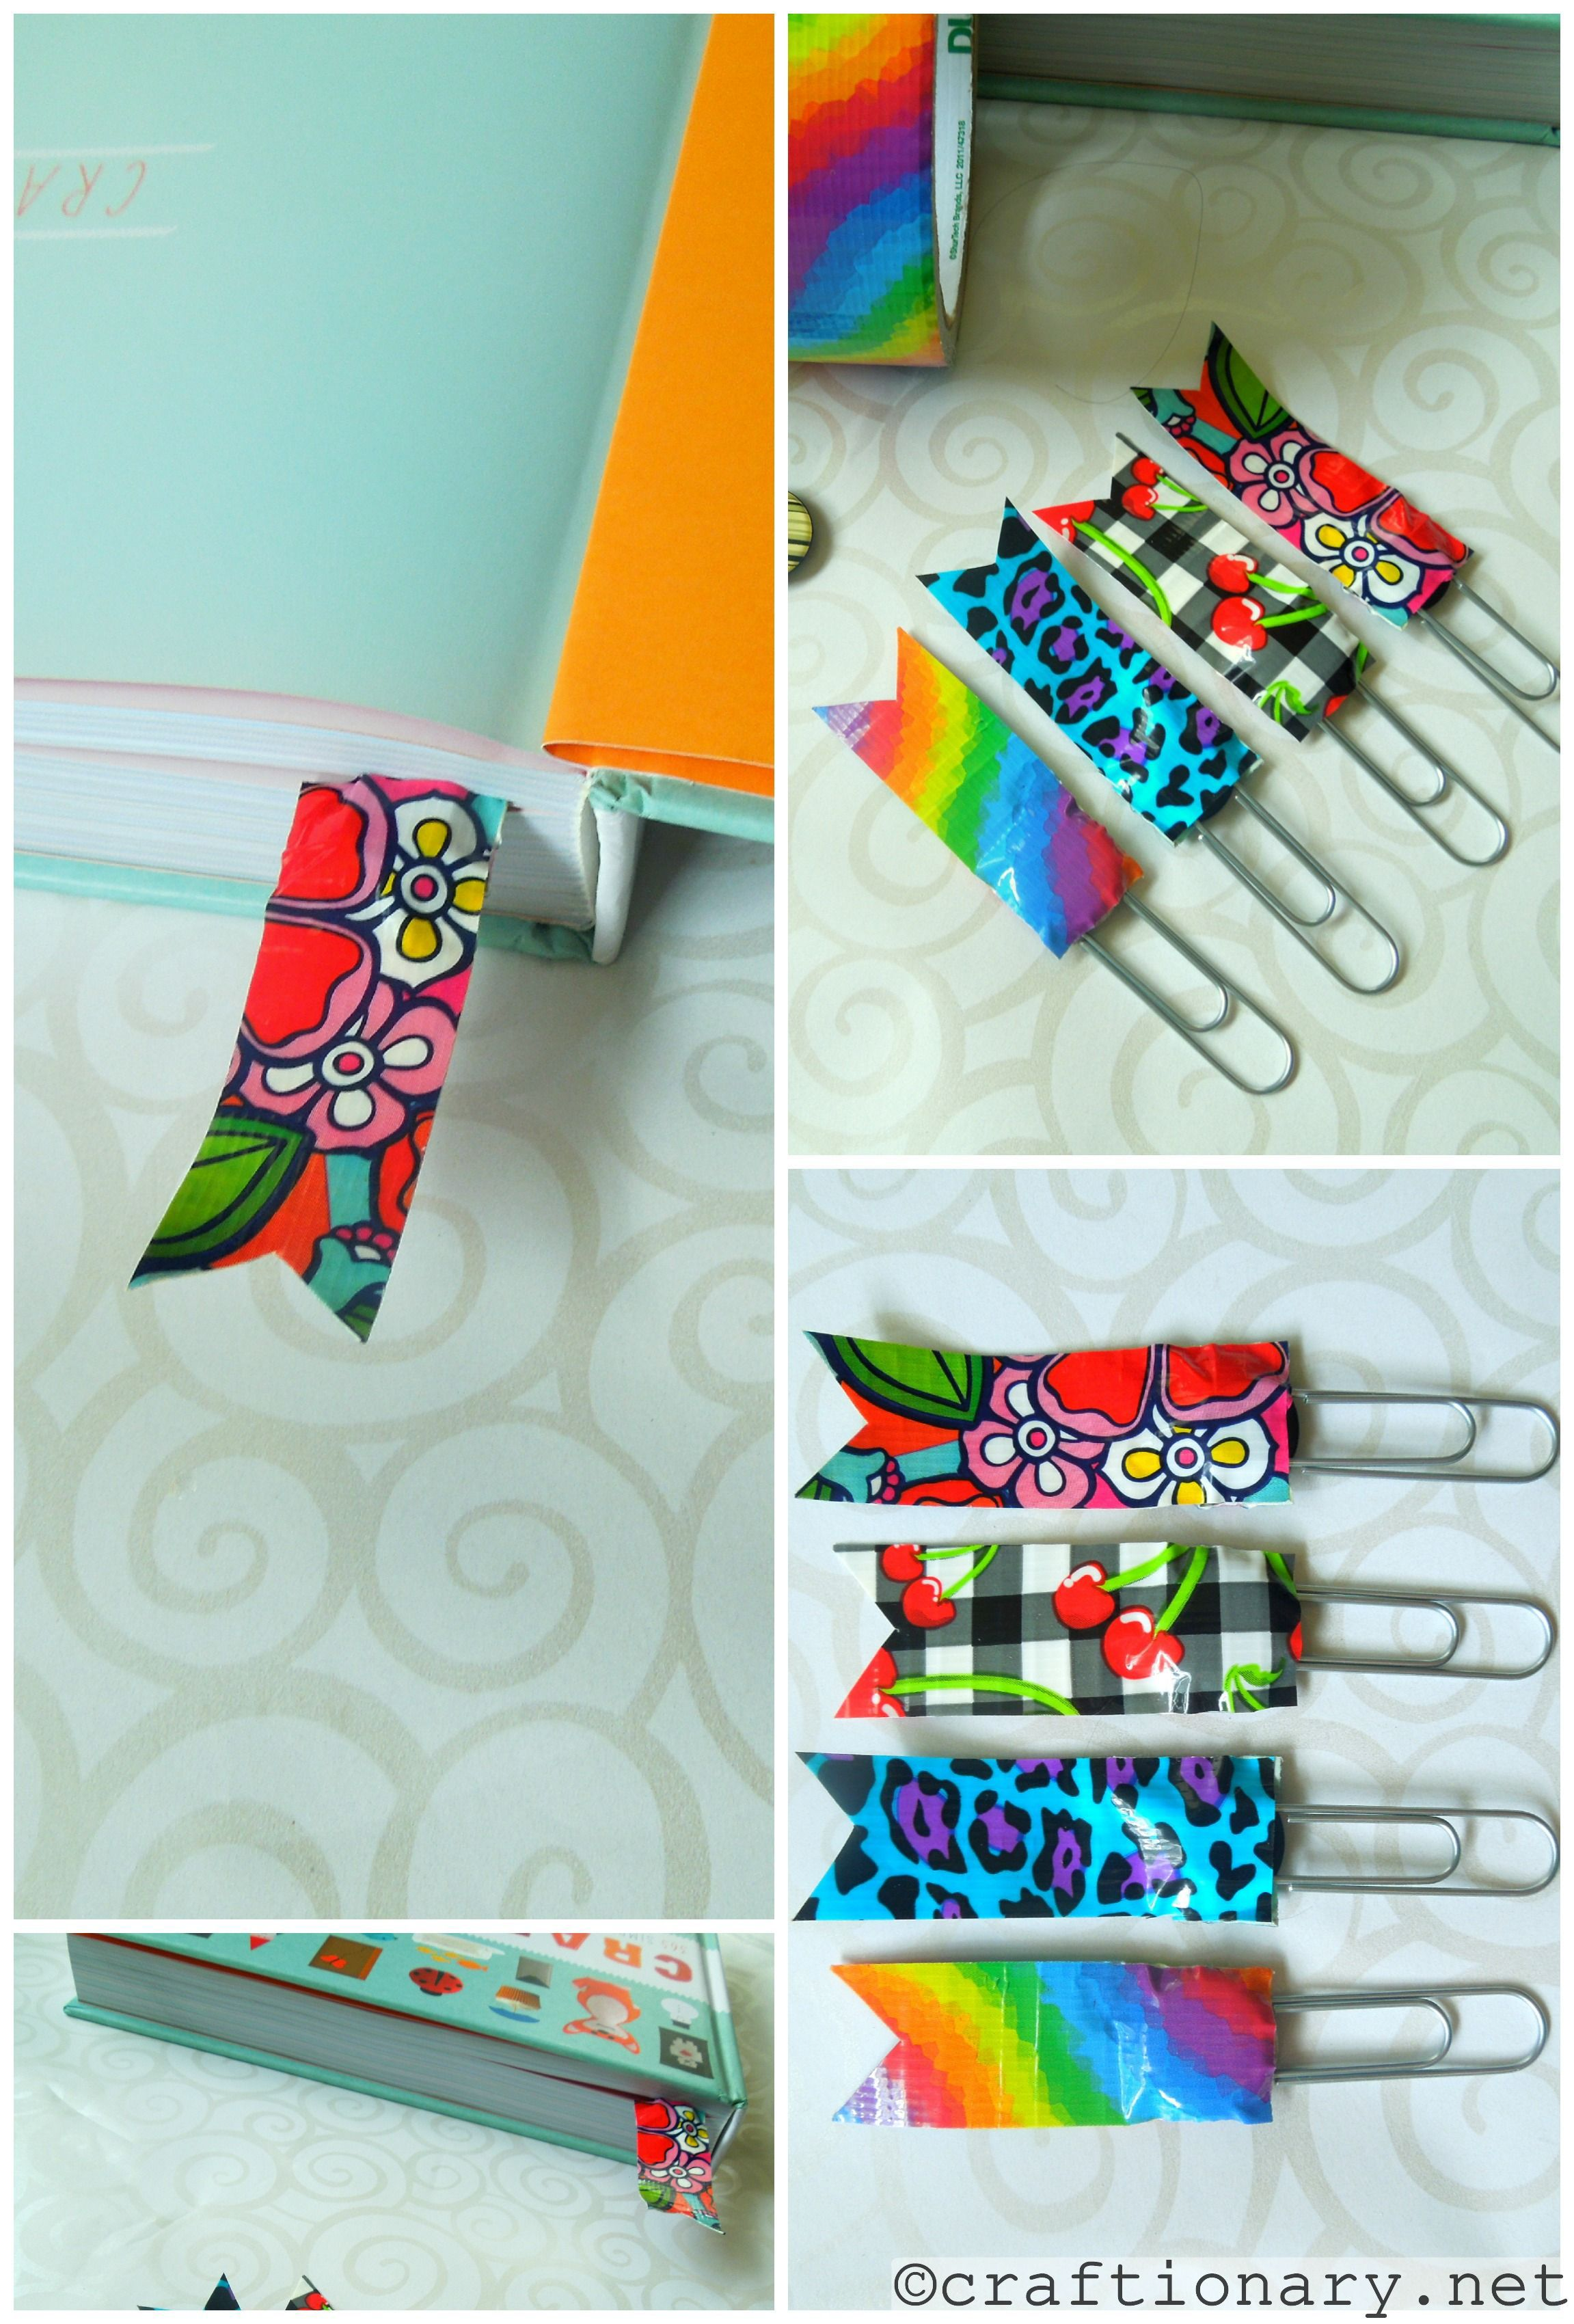 diy duct tape ideas make simple crafts